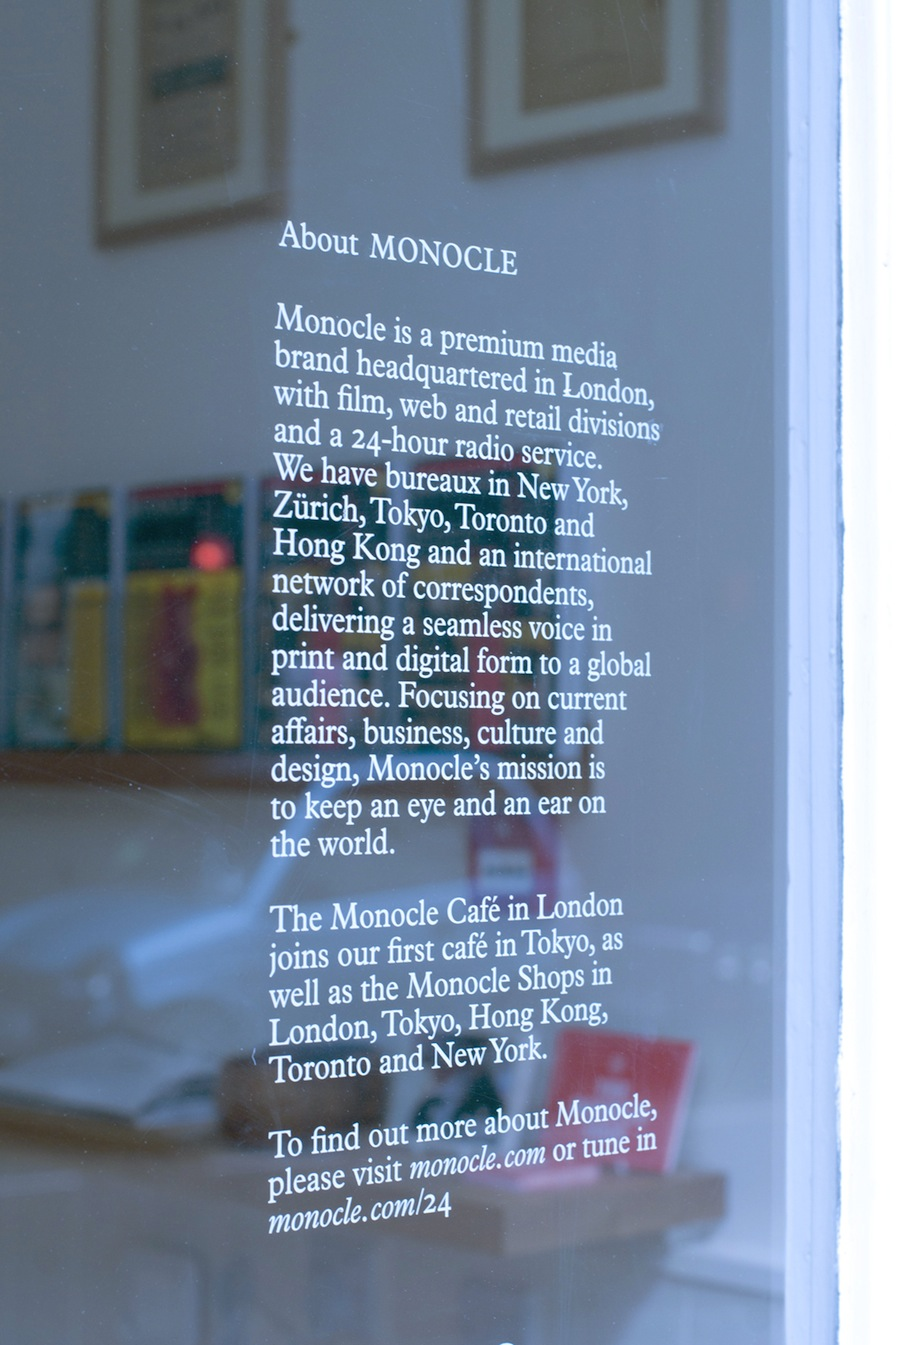 Monocle-Cafe-01